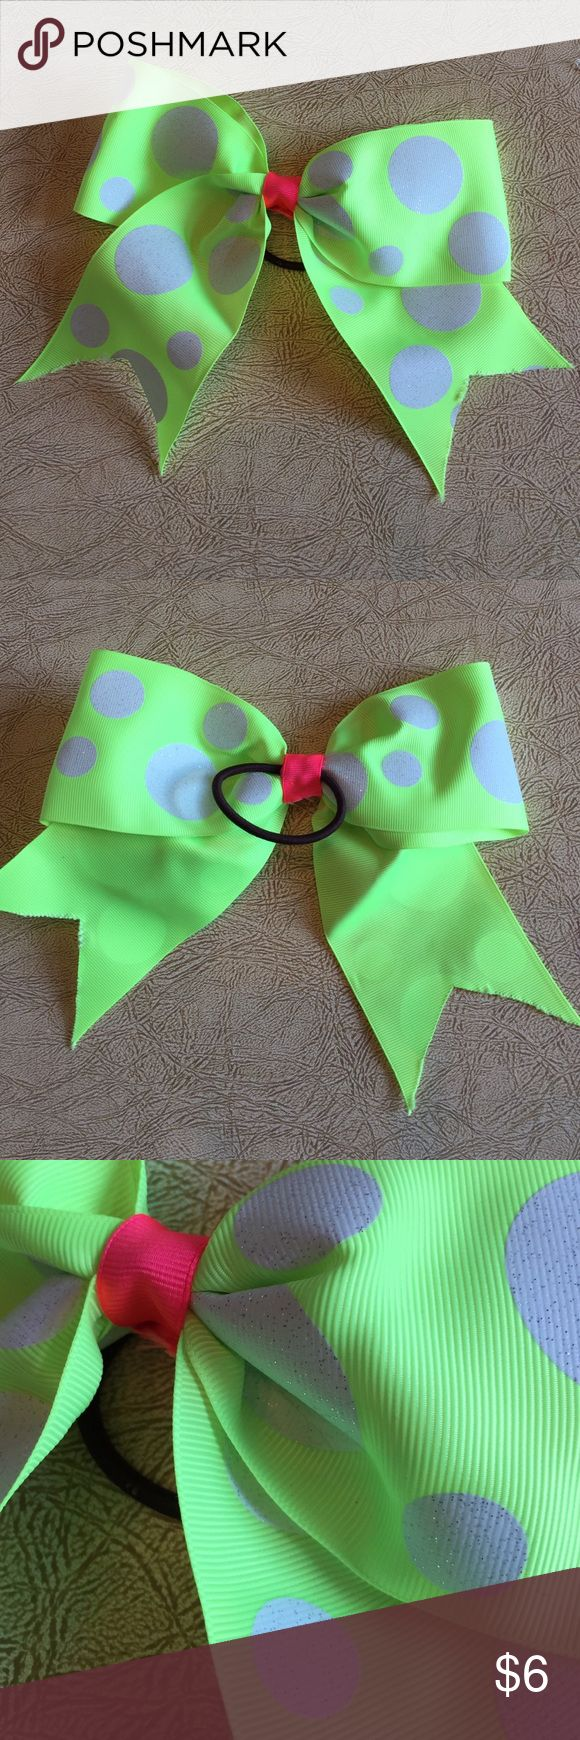 Selling this Neon green/white polka dot/pink cheer hair bow on Poshmark! My username is: mblsales. #shopmycloset #poshmark #fashion #shopping #style #forsale #Handmade #Other